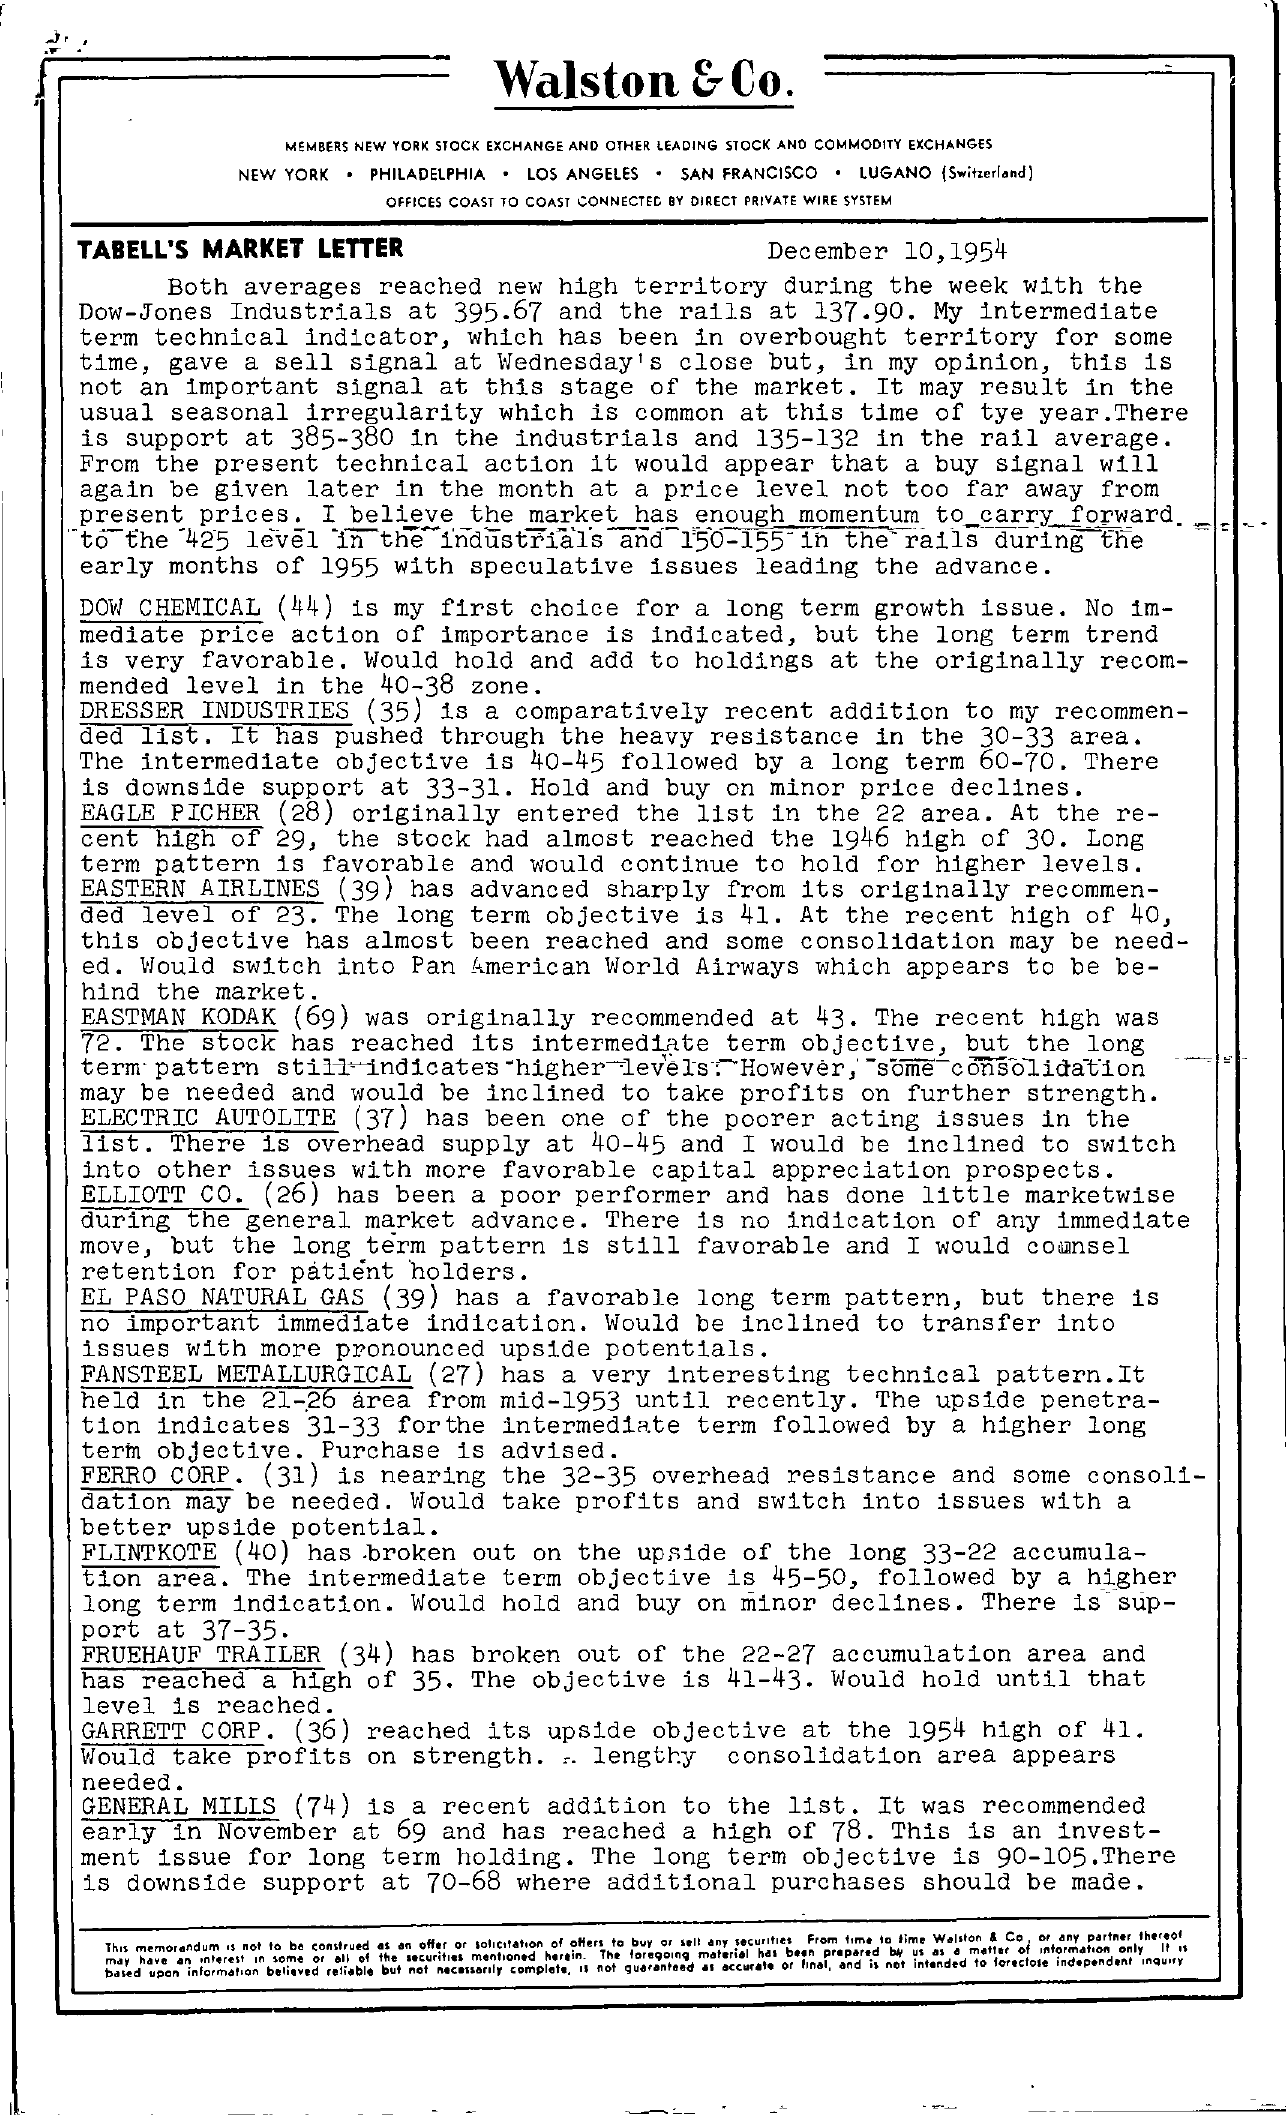 Tabell's Market Letter - December 10, 1954 page 1